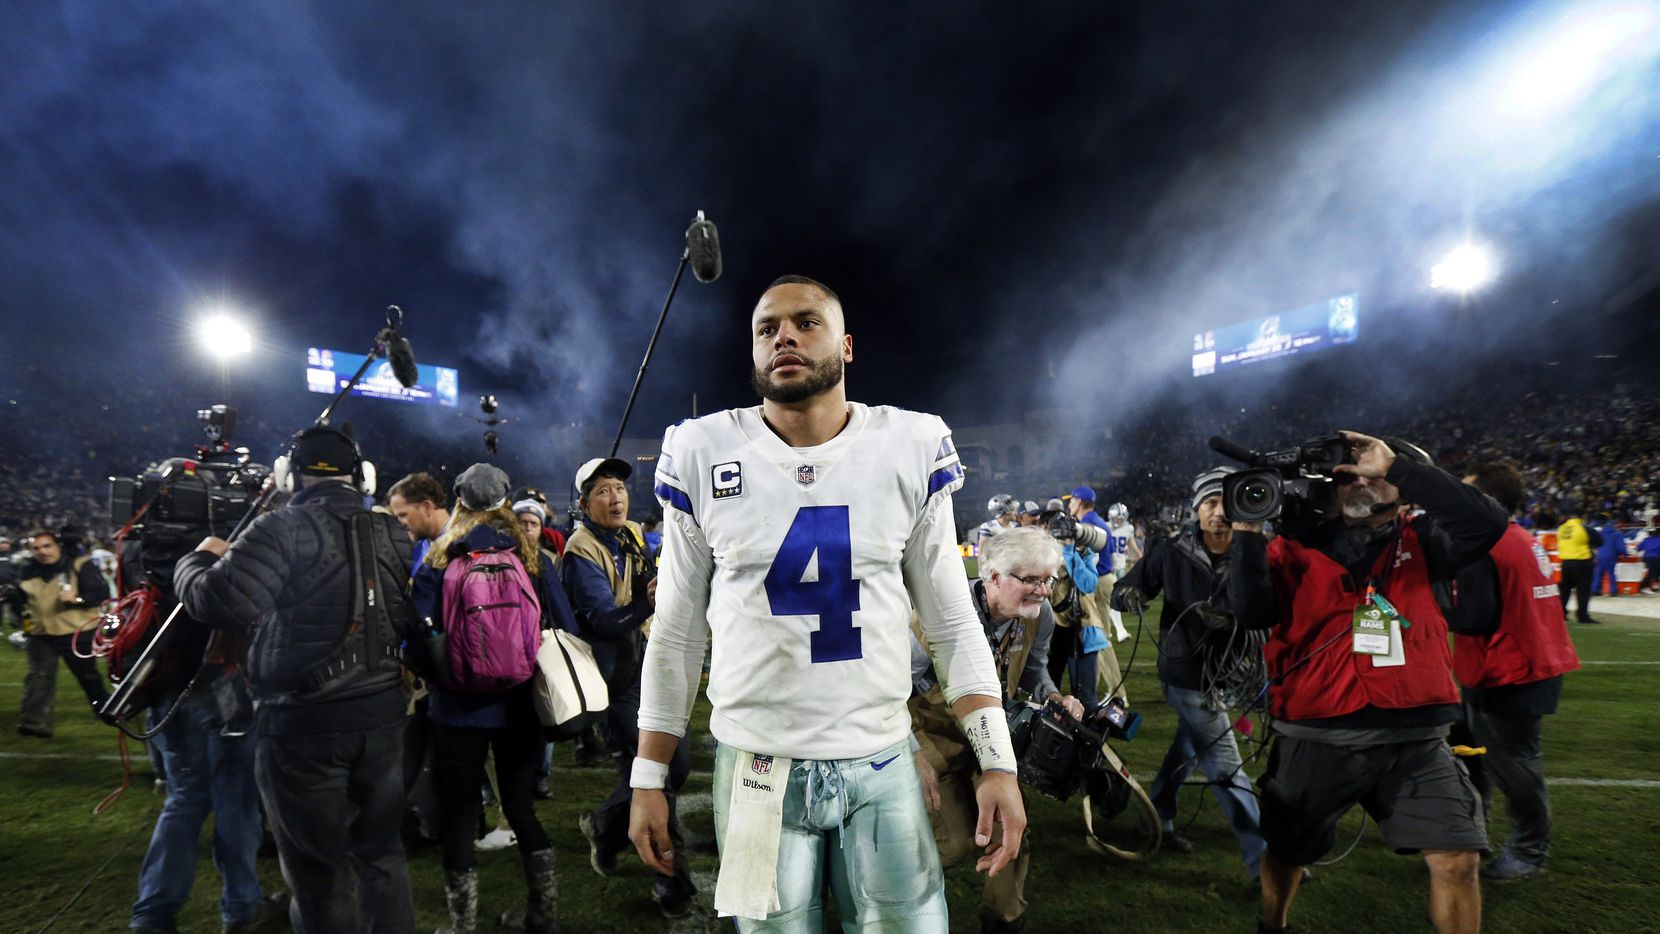 Dallas Cowboys quarterback Dak Prescott (4) leaves the field after losing to the Los Angeles Rams in their NFC Divisional Playoff game at Los Angeles Memorial Coliseum in Los Angeles, Saturday, January 12, 2019. The Cowboys lost 30-22.